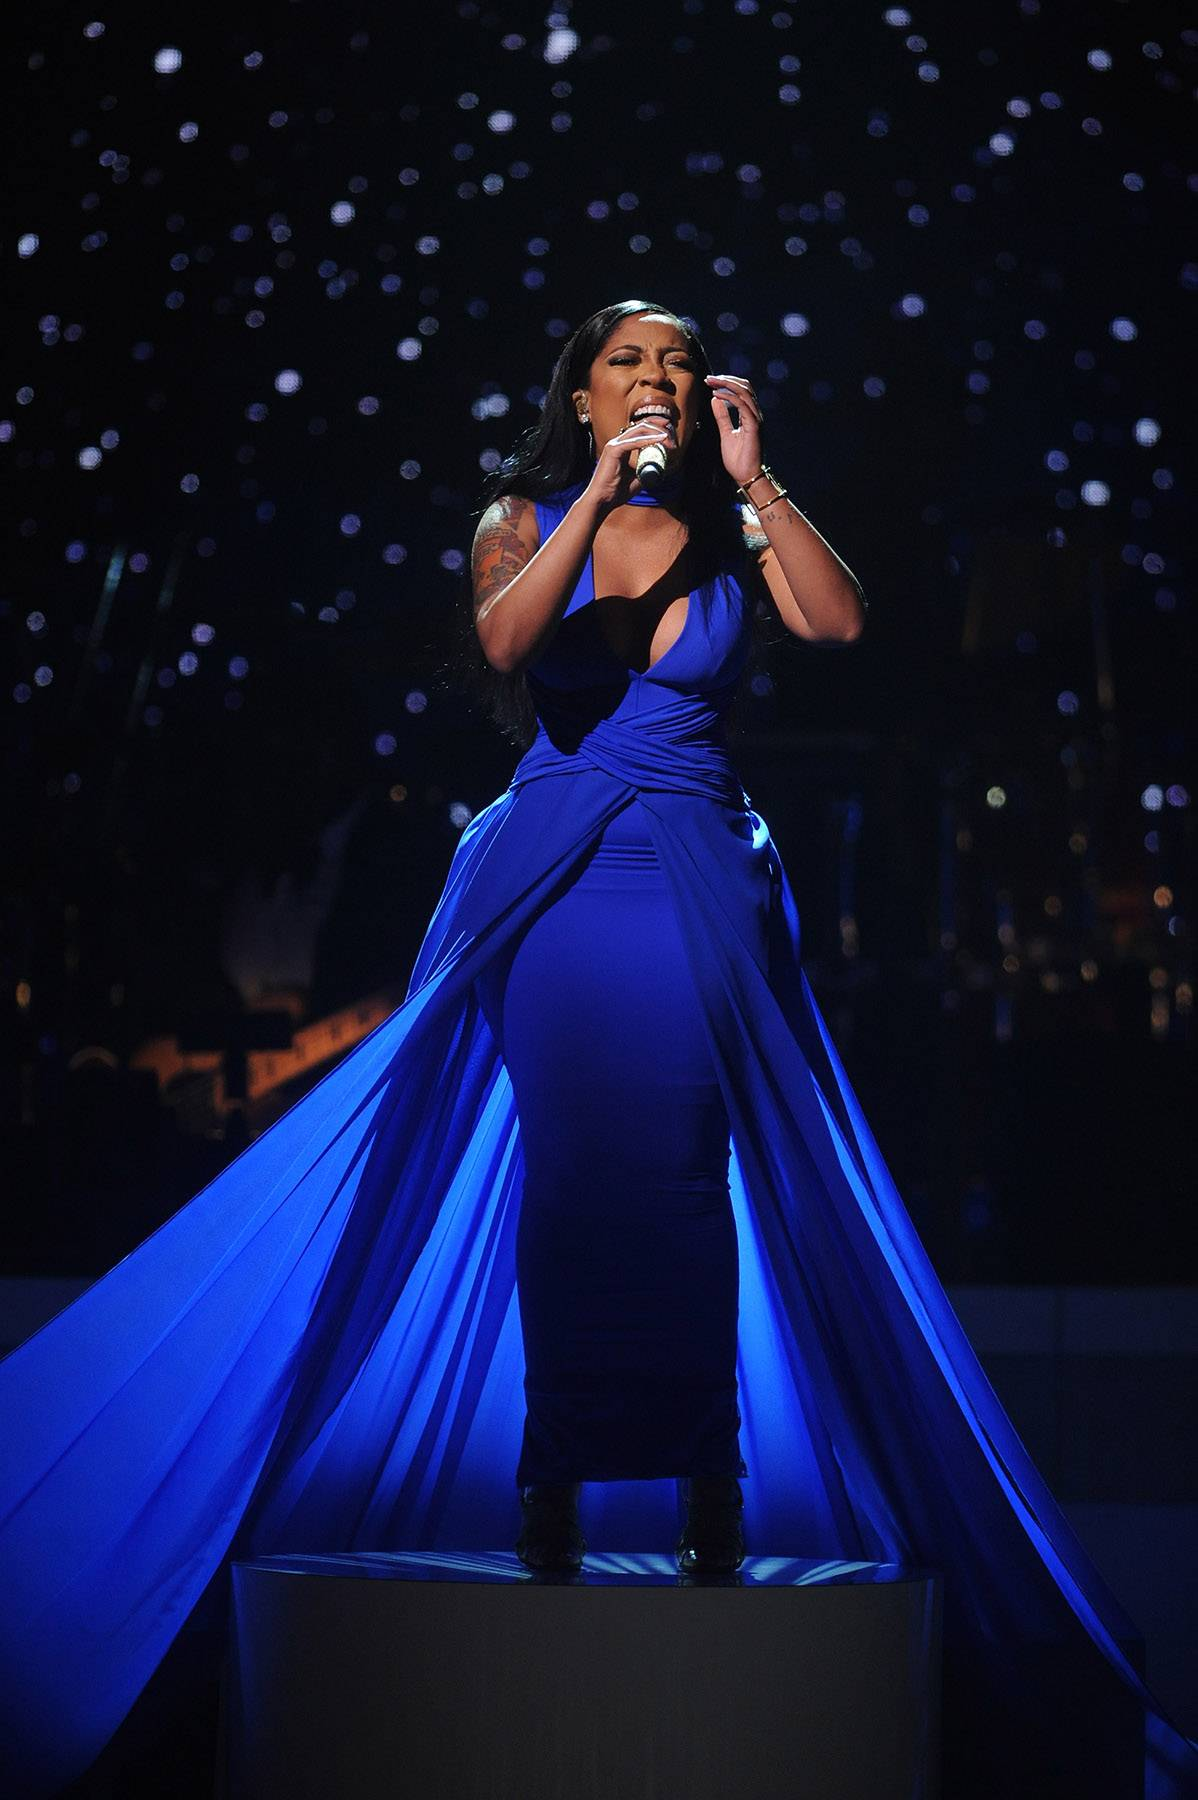 """Gone With the Wind - Singer K. Michelle performed in royal blue dress that took over the stage. Her vocals were on point as she performed """"Judge Me"""" for the honorees. (Photo: Brad Barket/BET/Getty Images for BET)"""